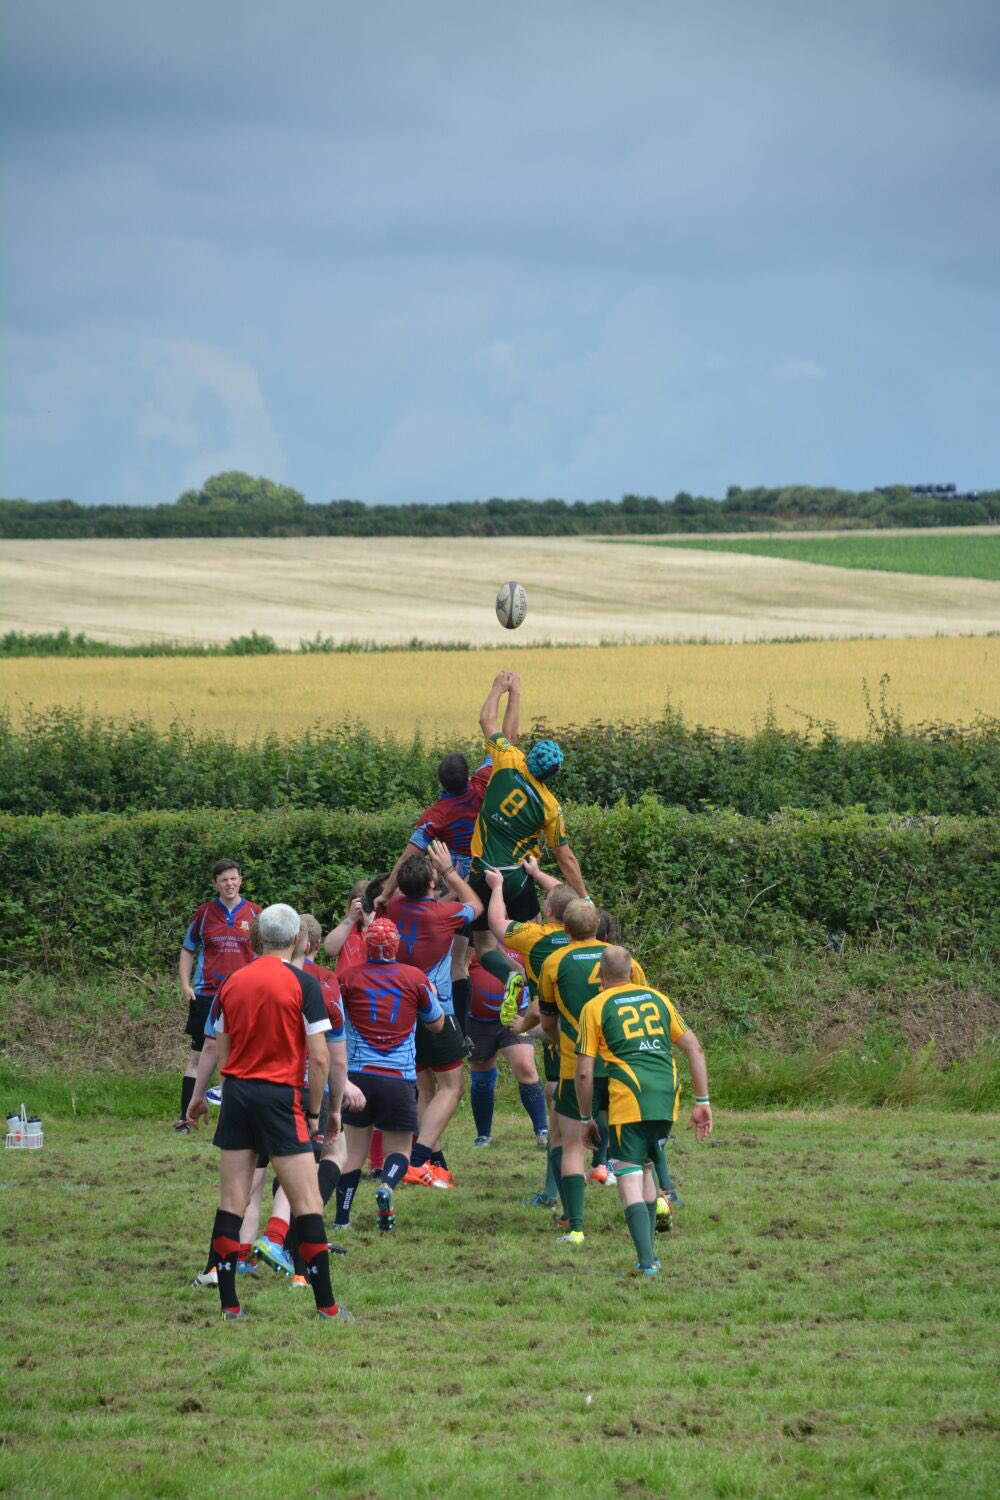 """Fall Bay RFC on Twitter: """"Couple of pics from yesterday's game https://t.co/a8mGPpymDg"""""""